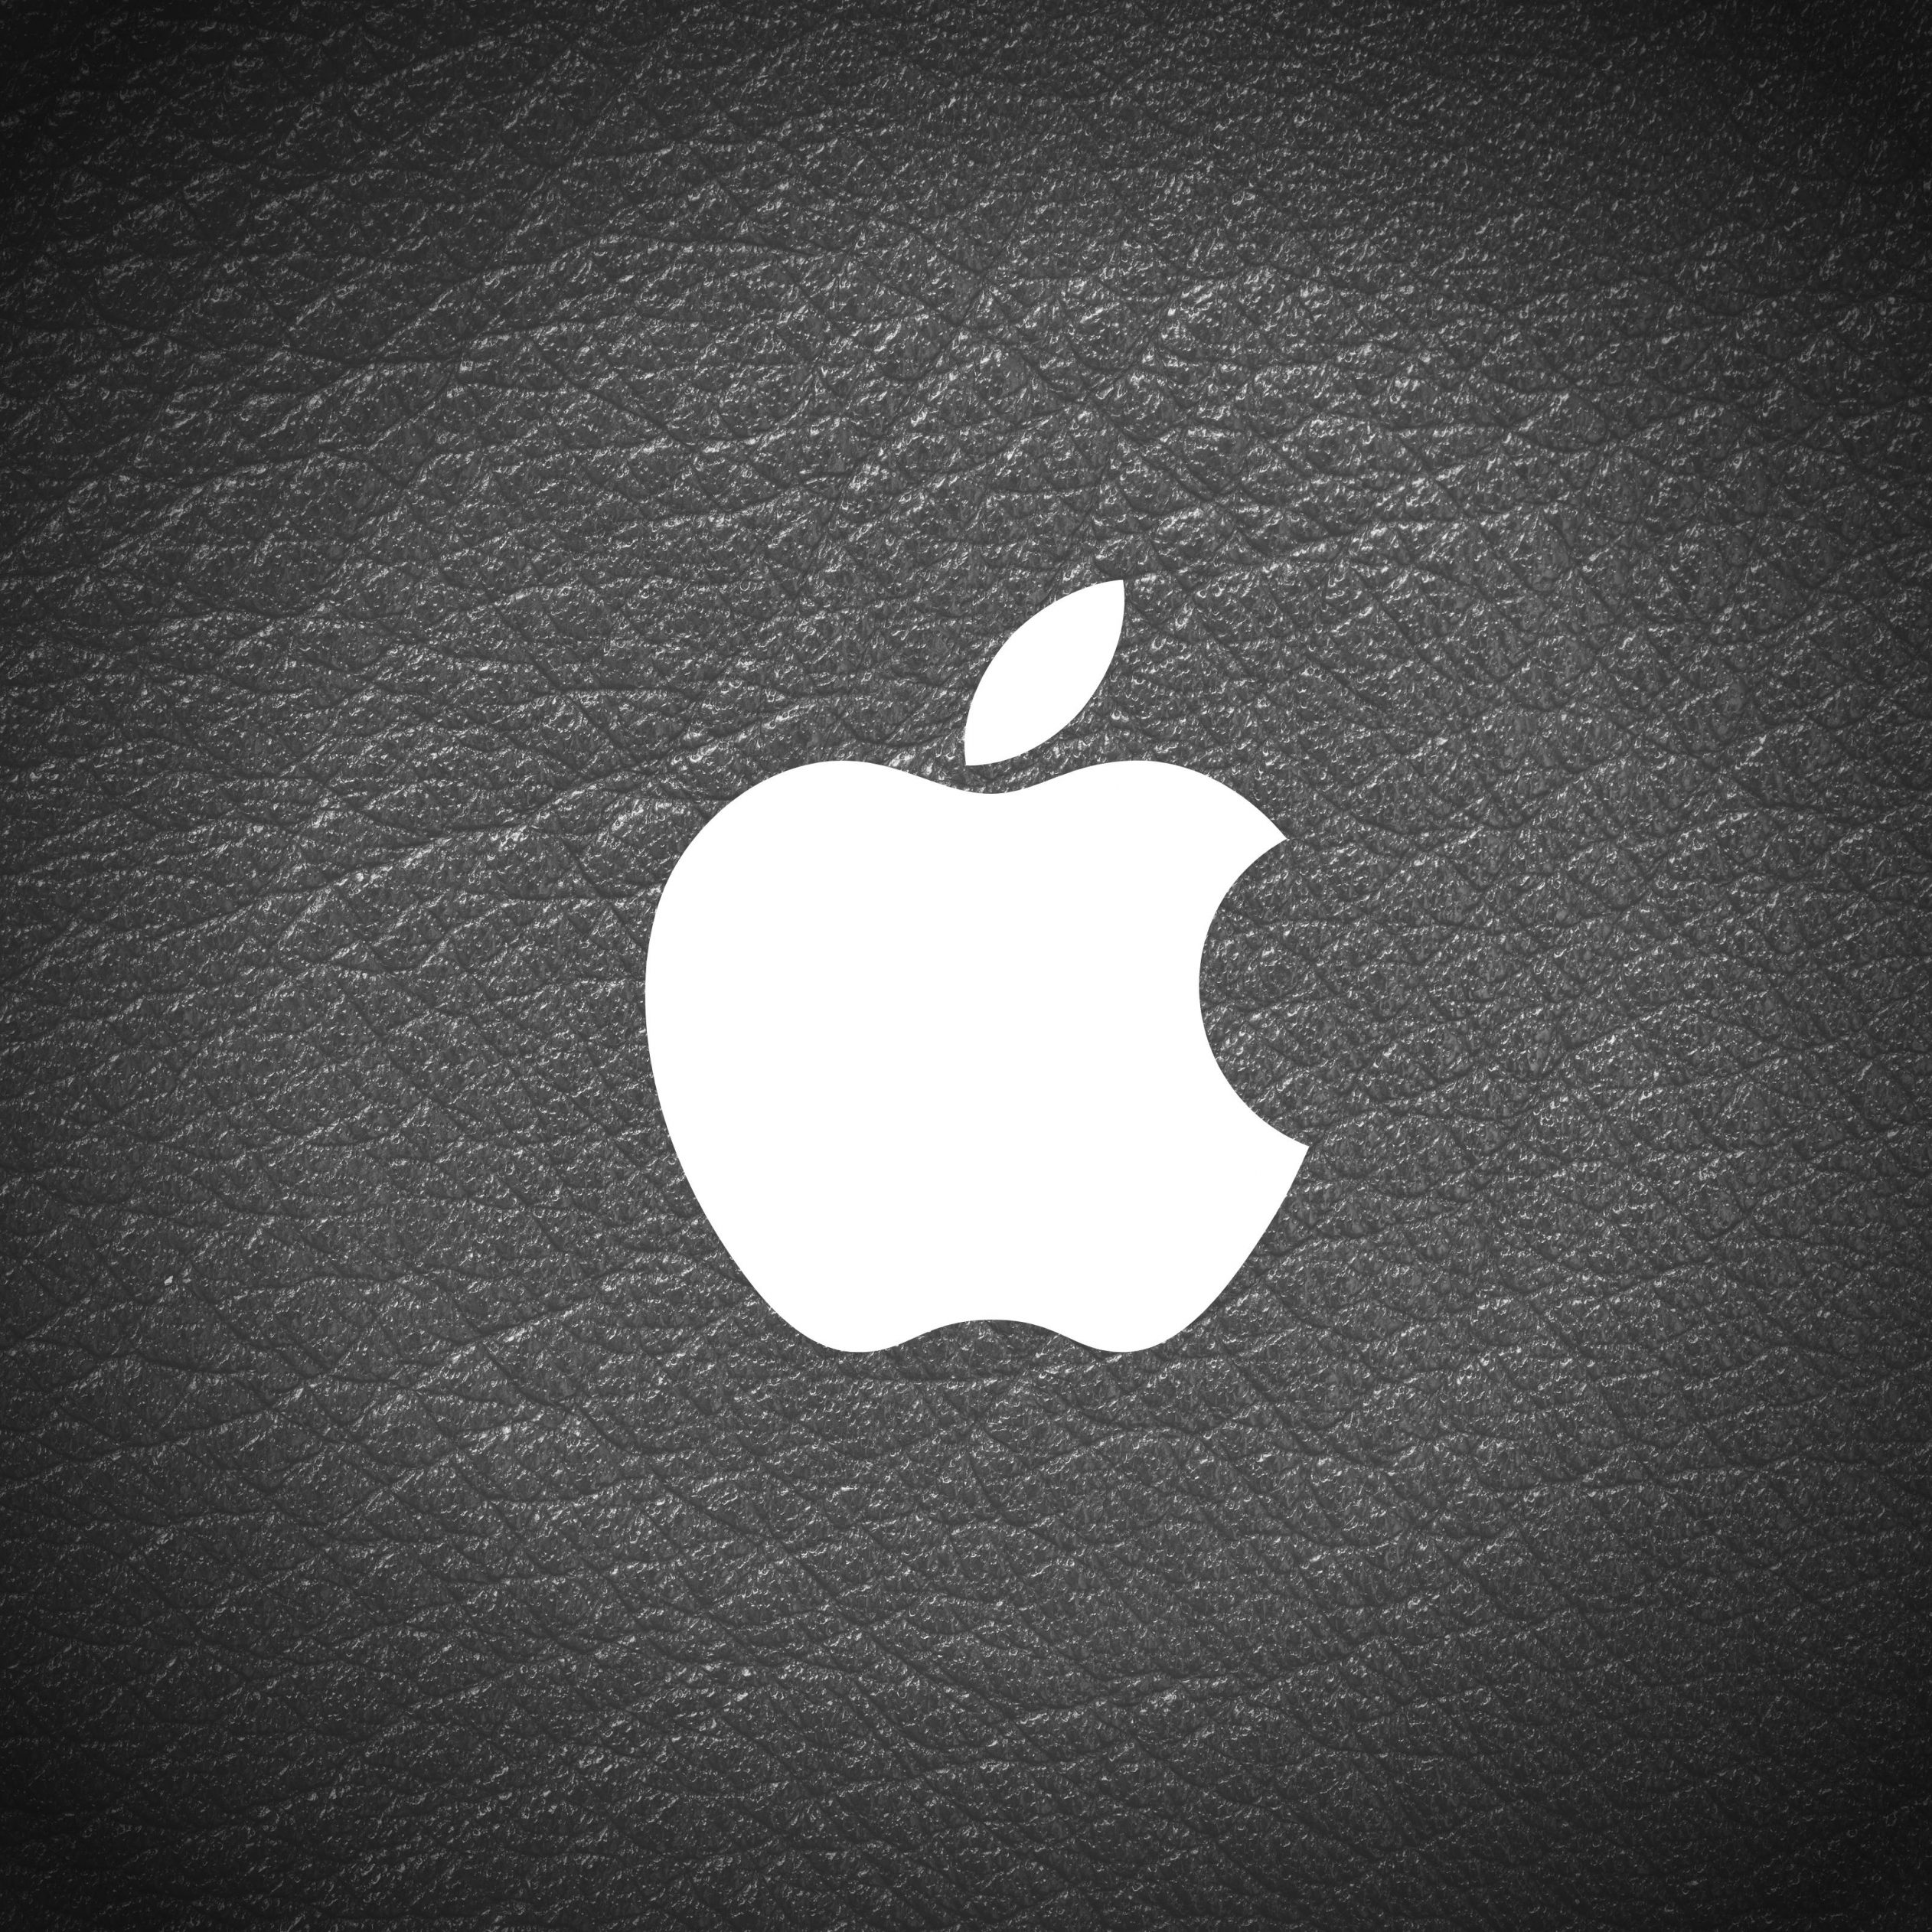 2524x2524 Parallax wallpaper 4k Apple Logo Leather Black and White iPad Wallpaper 2524x2524 pixels resolution